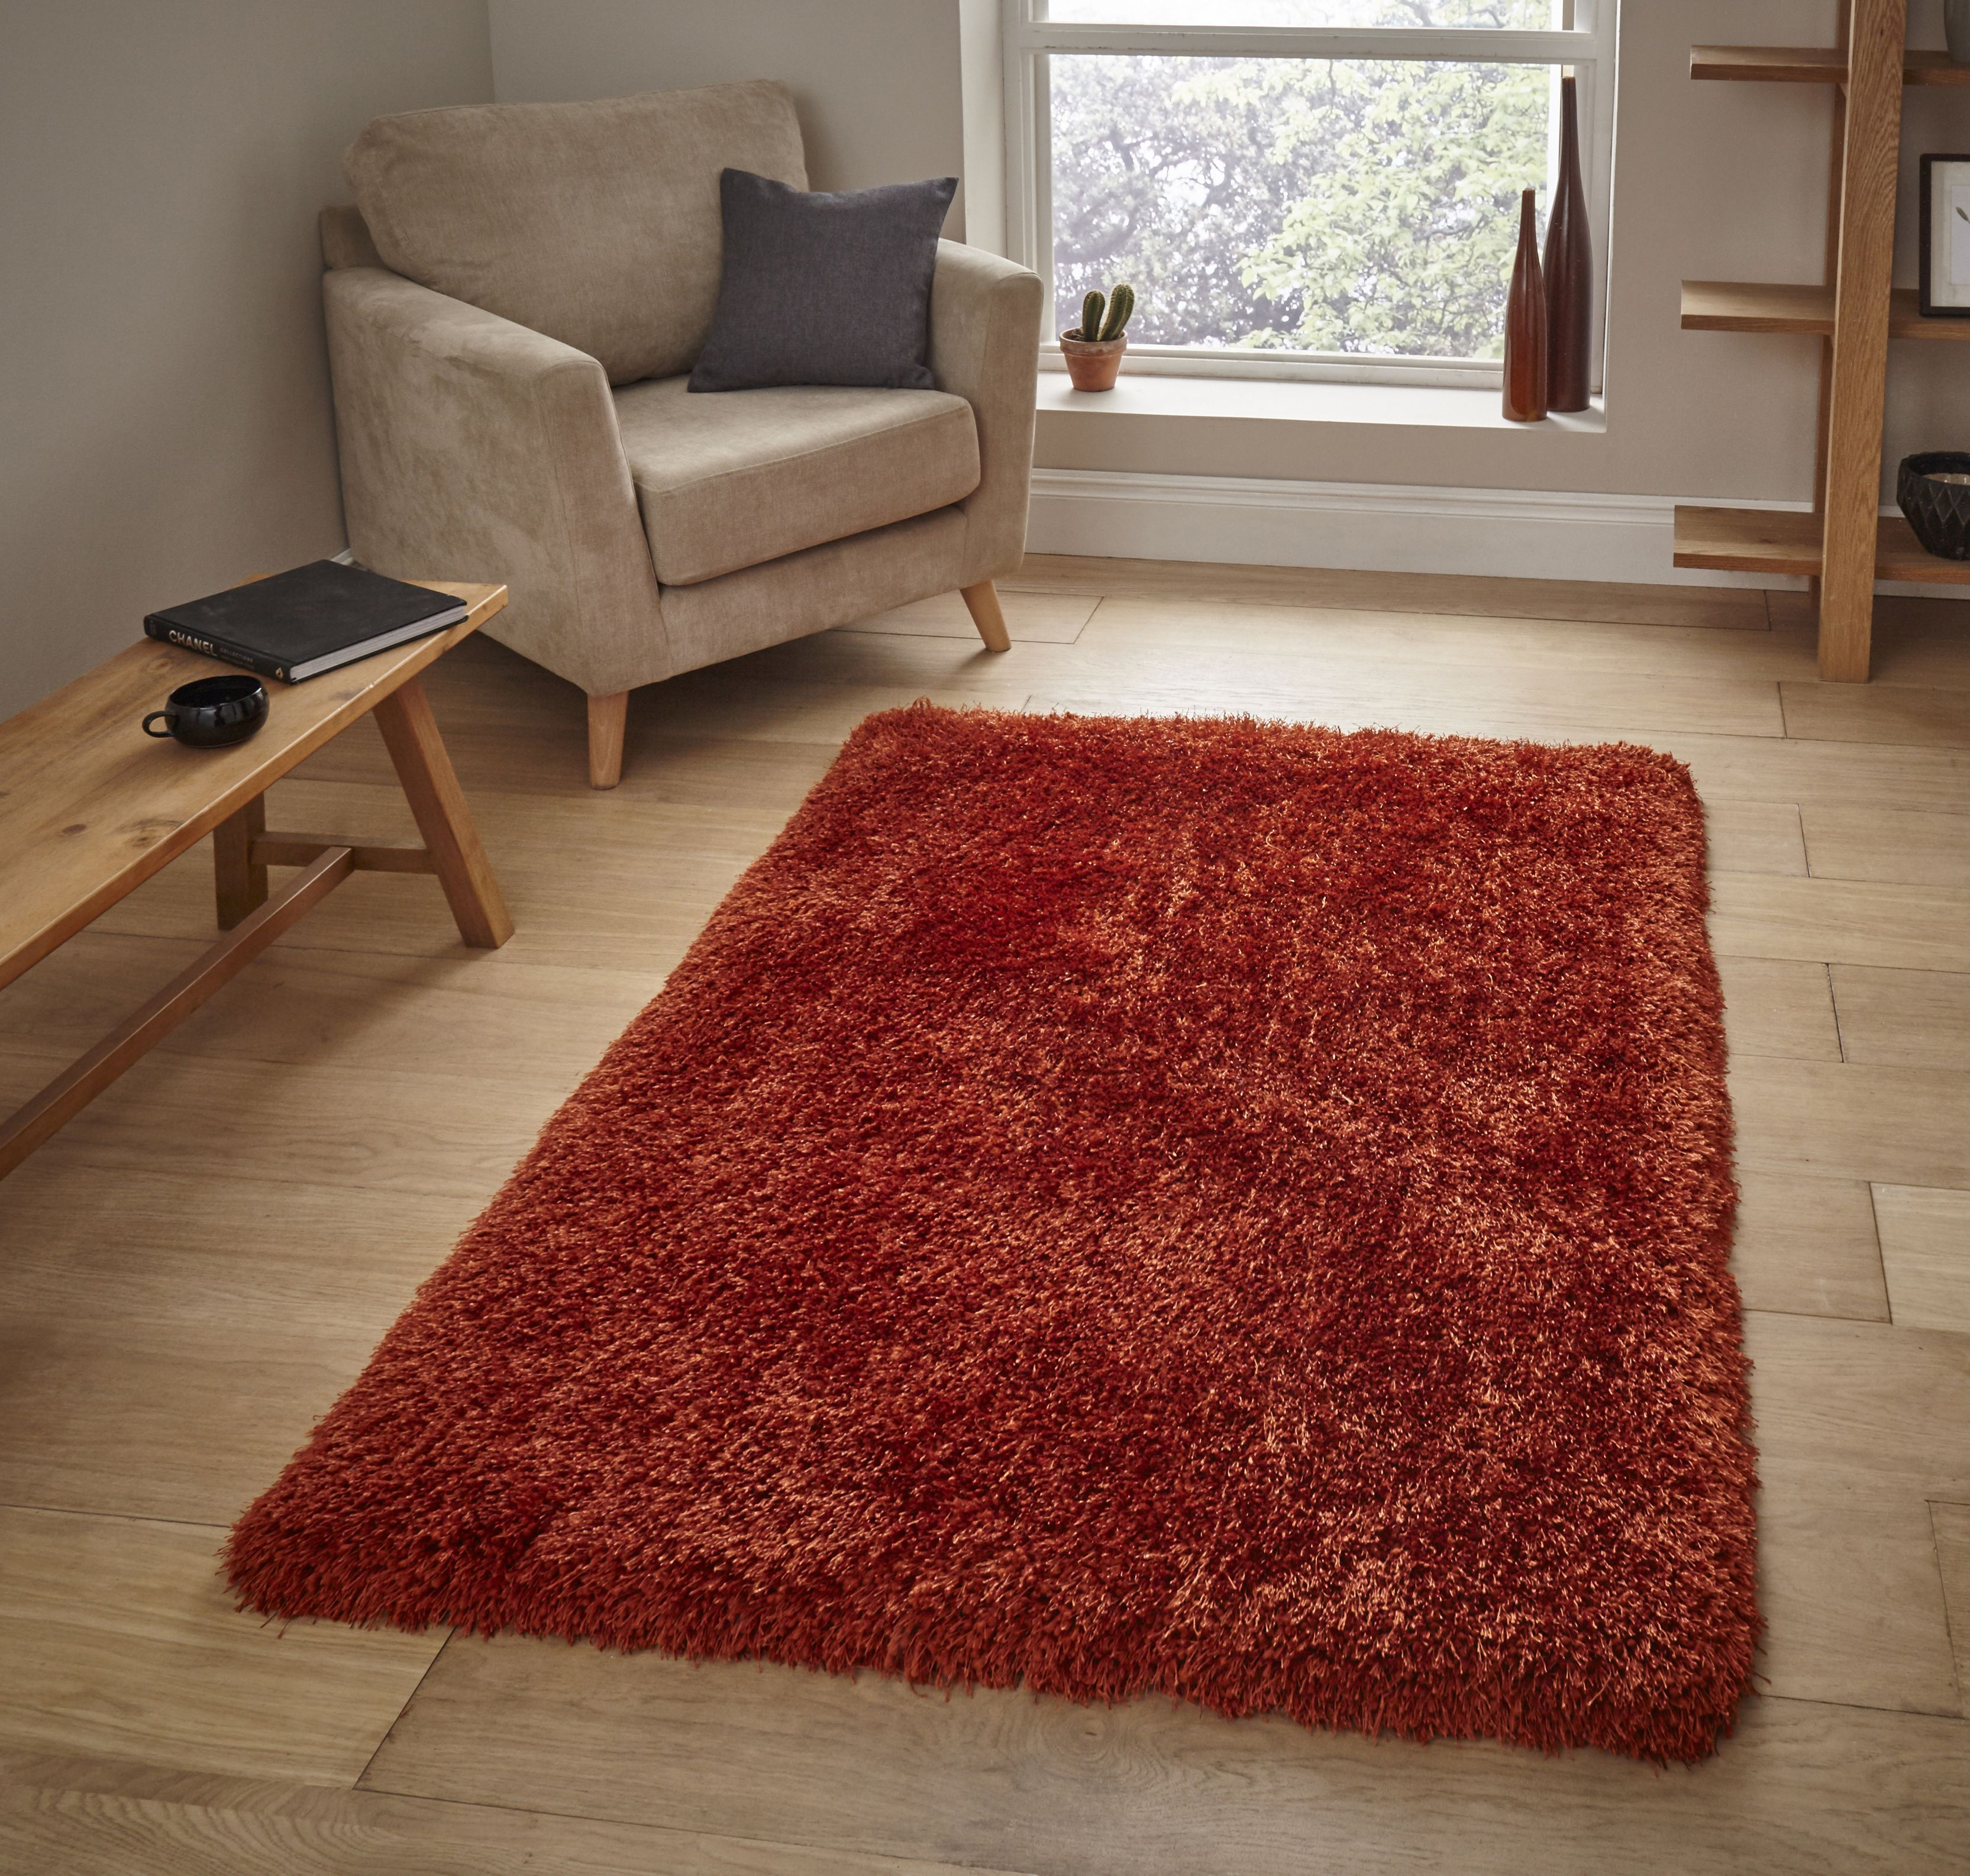 Montana Terra Rug A Hand Tufted Luxuriously Thick And Soft Shaggy Acrylic